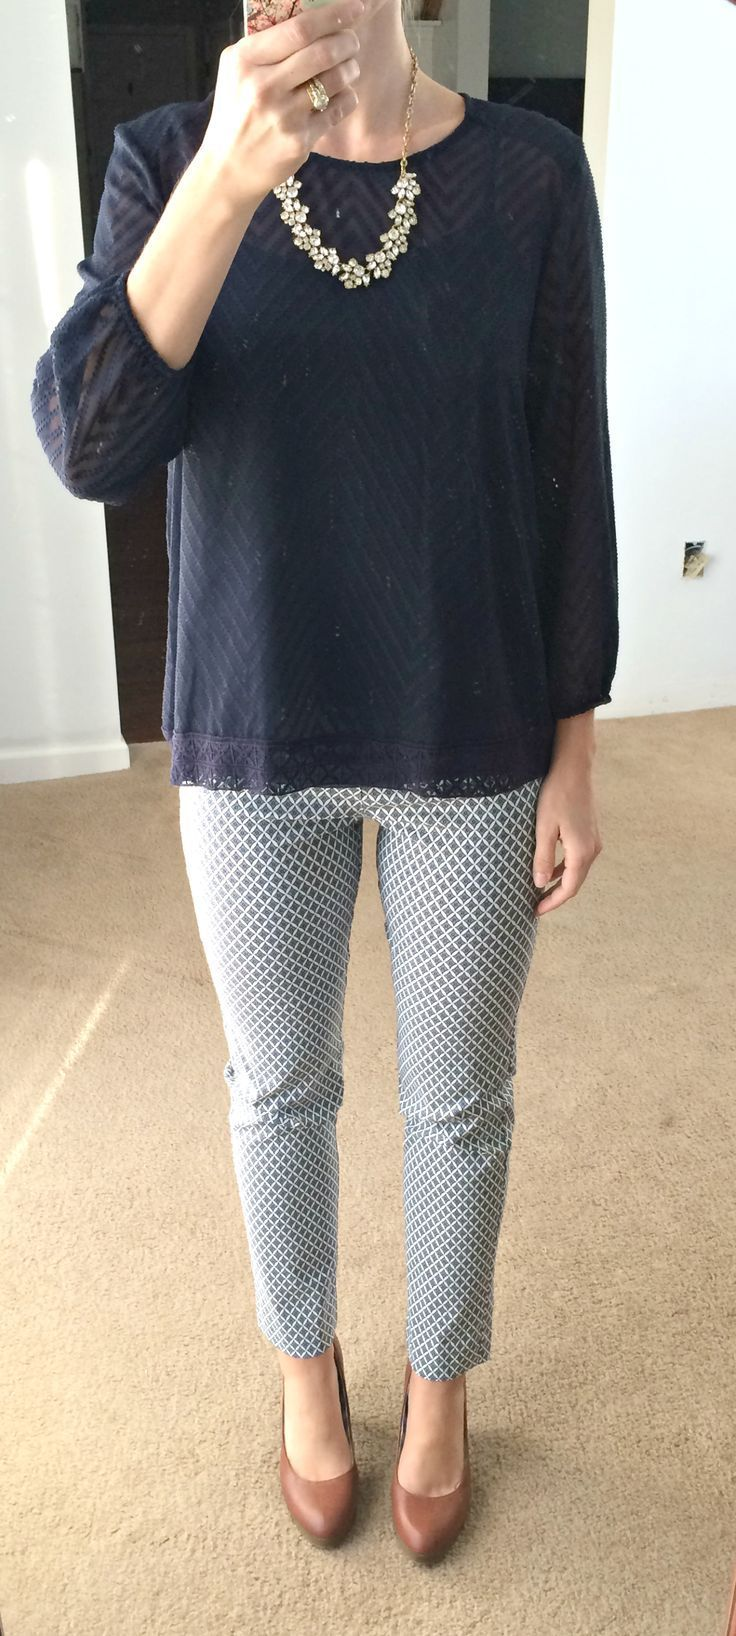 Dear Stitch Fix Stylist, The top is so pretty! I love the pattern and the details in the edging.